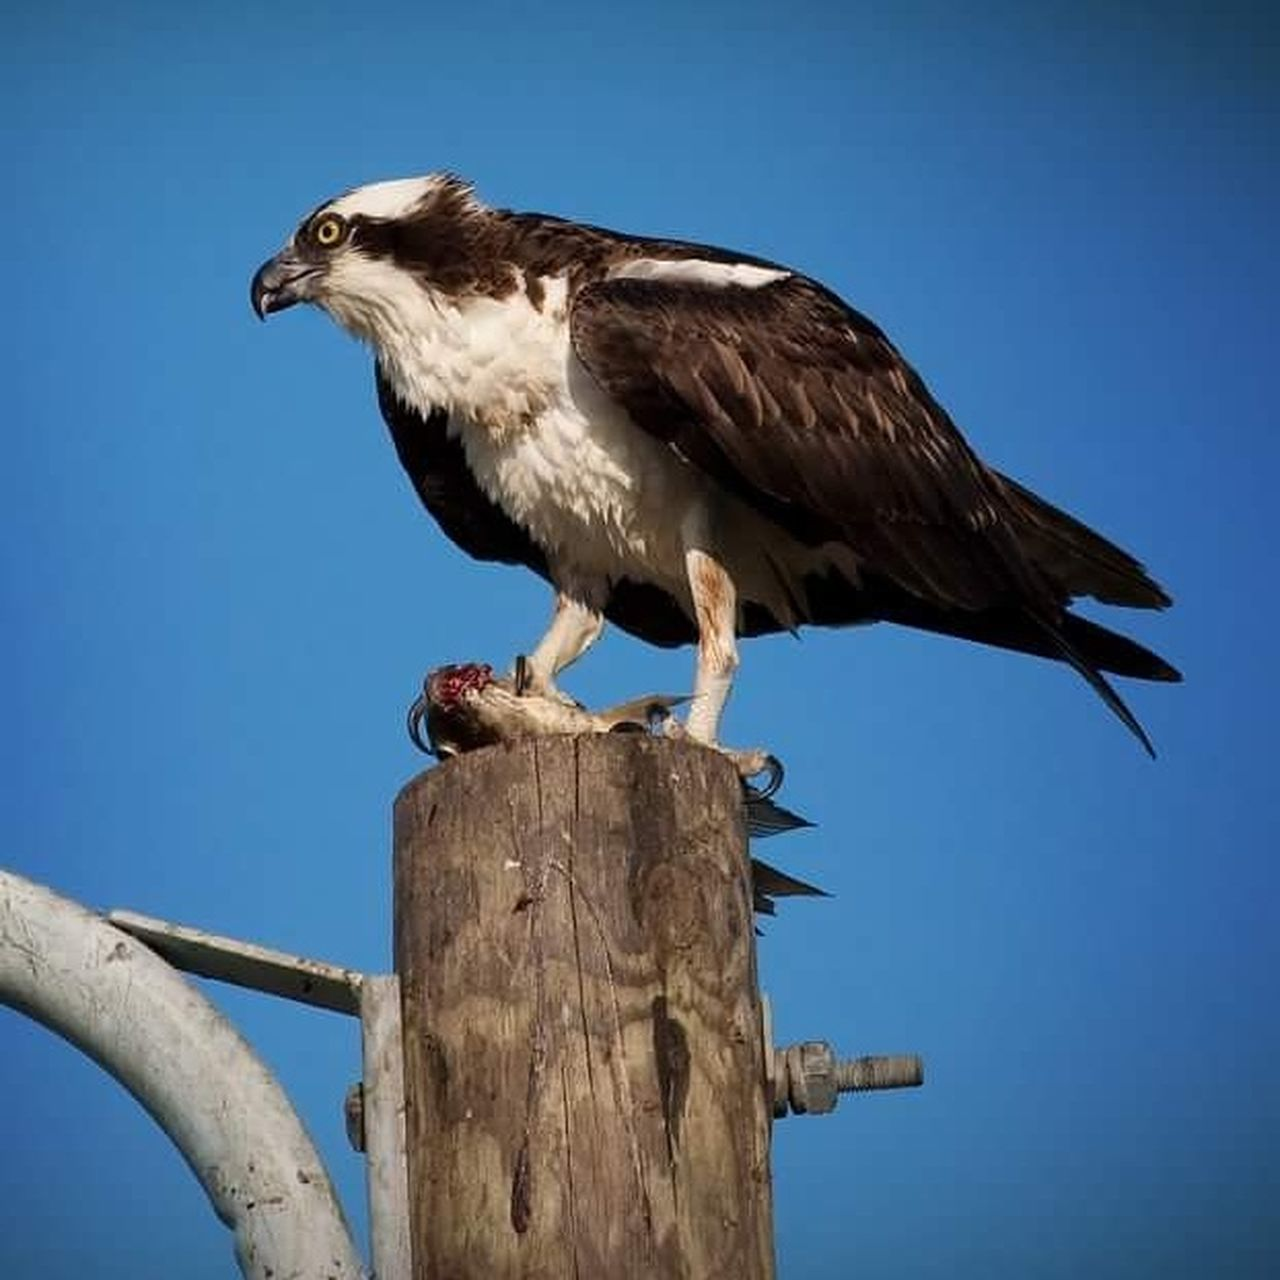 bird, bird of prey, one animal, perching, animal wildlife, animals in the wild, blue, outdoors, clear sky, no people, day, animal themes, bald eagle, wooden post, close-up, full length, nature, sky